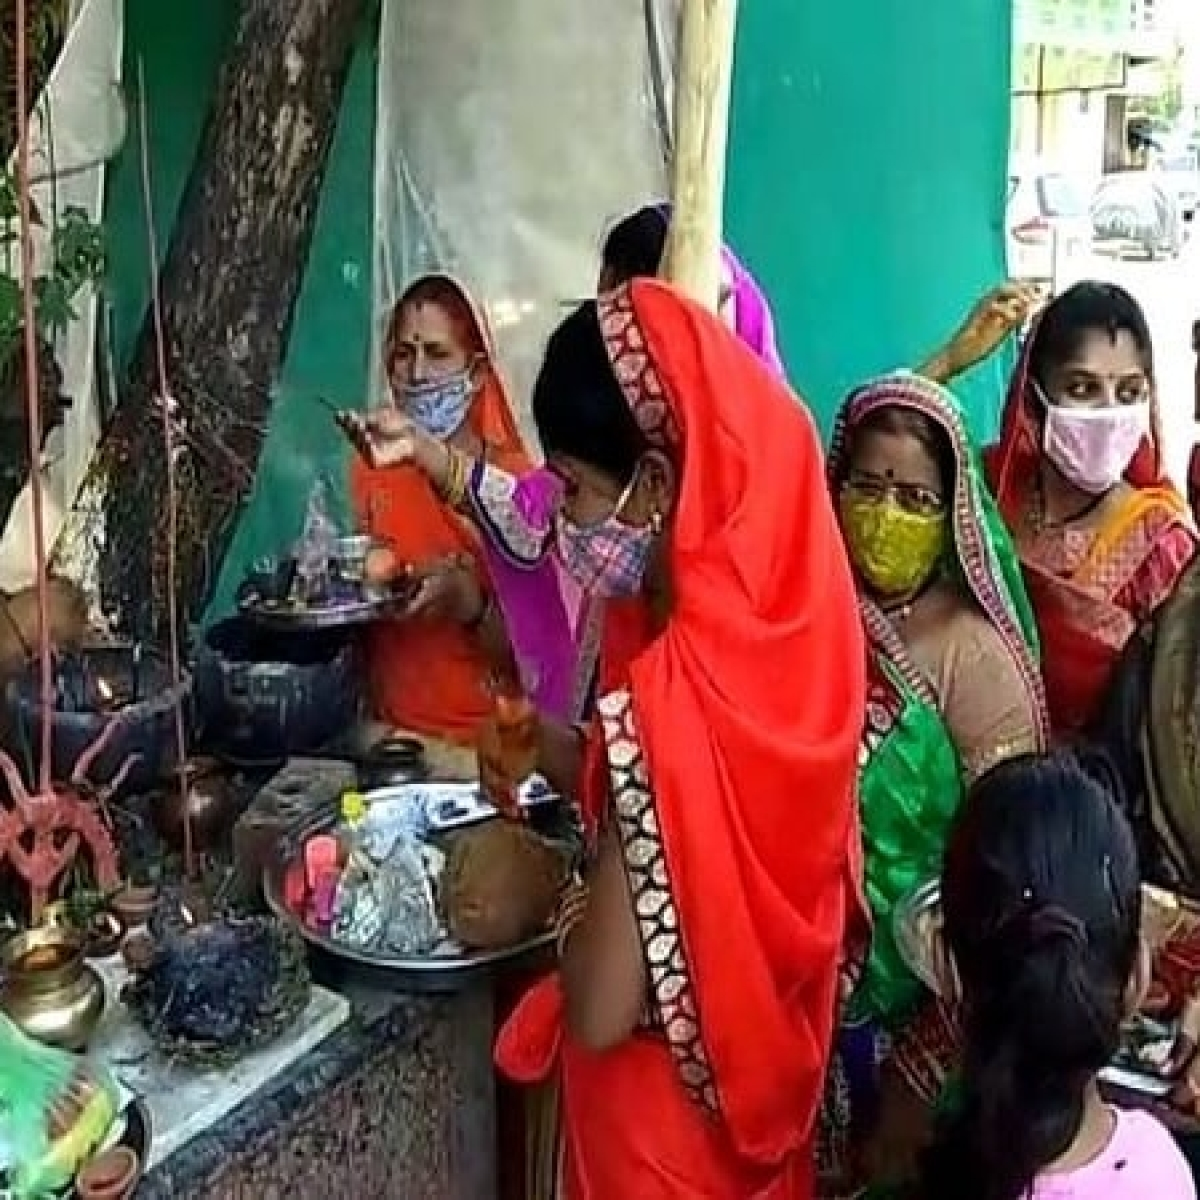 Chhattisgarh: Women fast, organise mass prayers in Rajnandgaon to please 'Corona Mata'